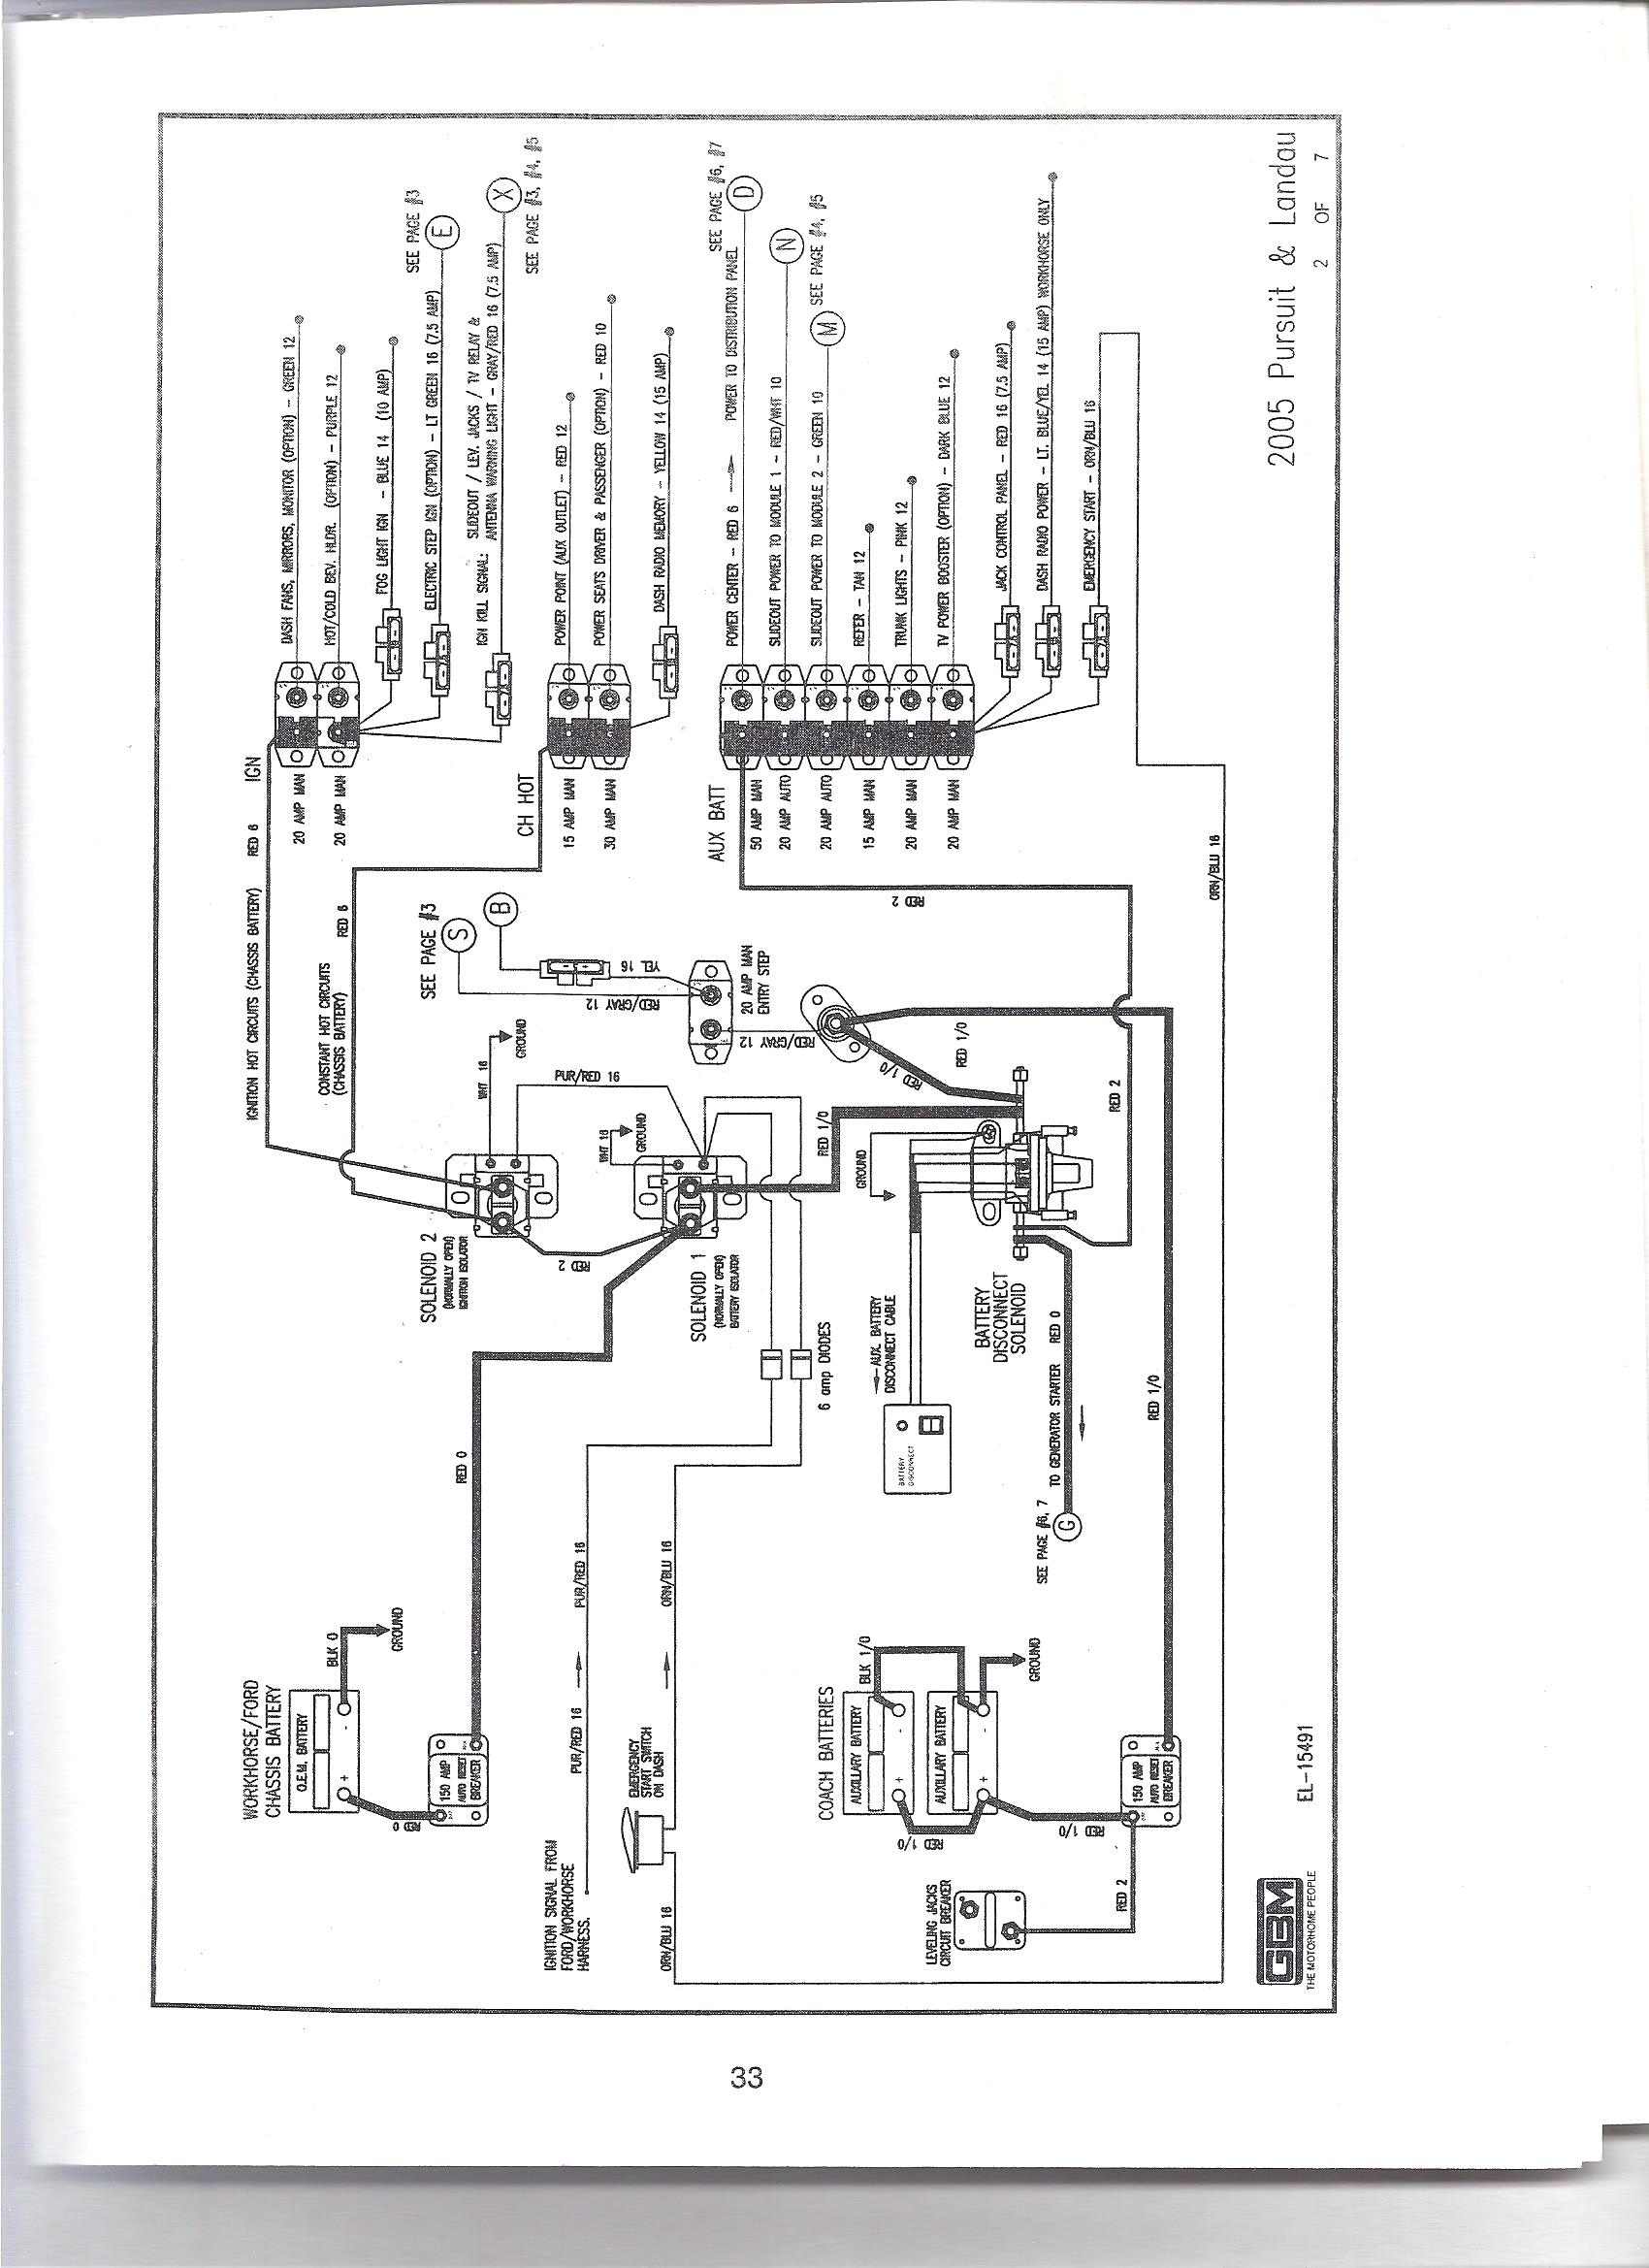 Jvc Car Audio Wiring Diagram Kd G342 | Wiring Liry R Jvc Car Stereo Wiring Diagram on